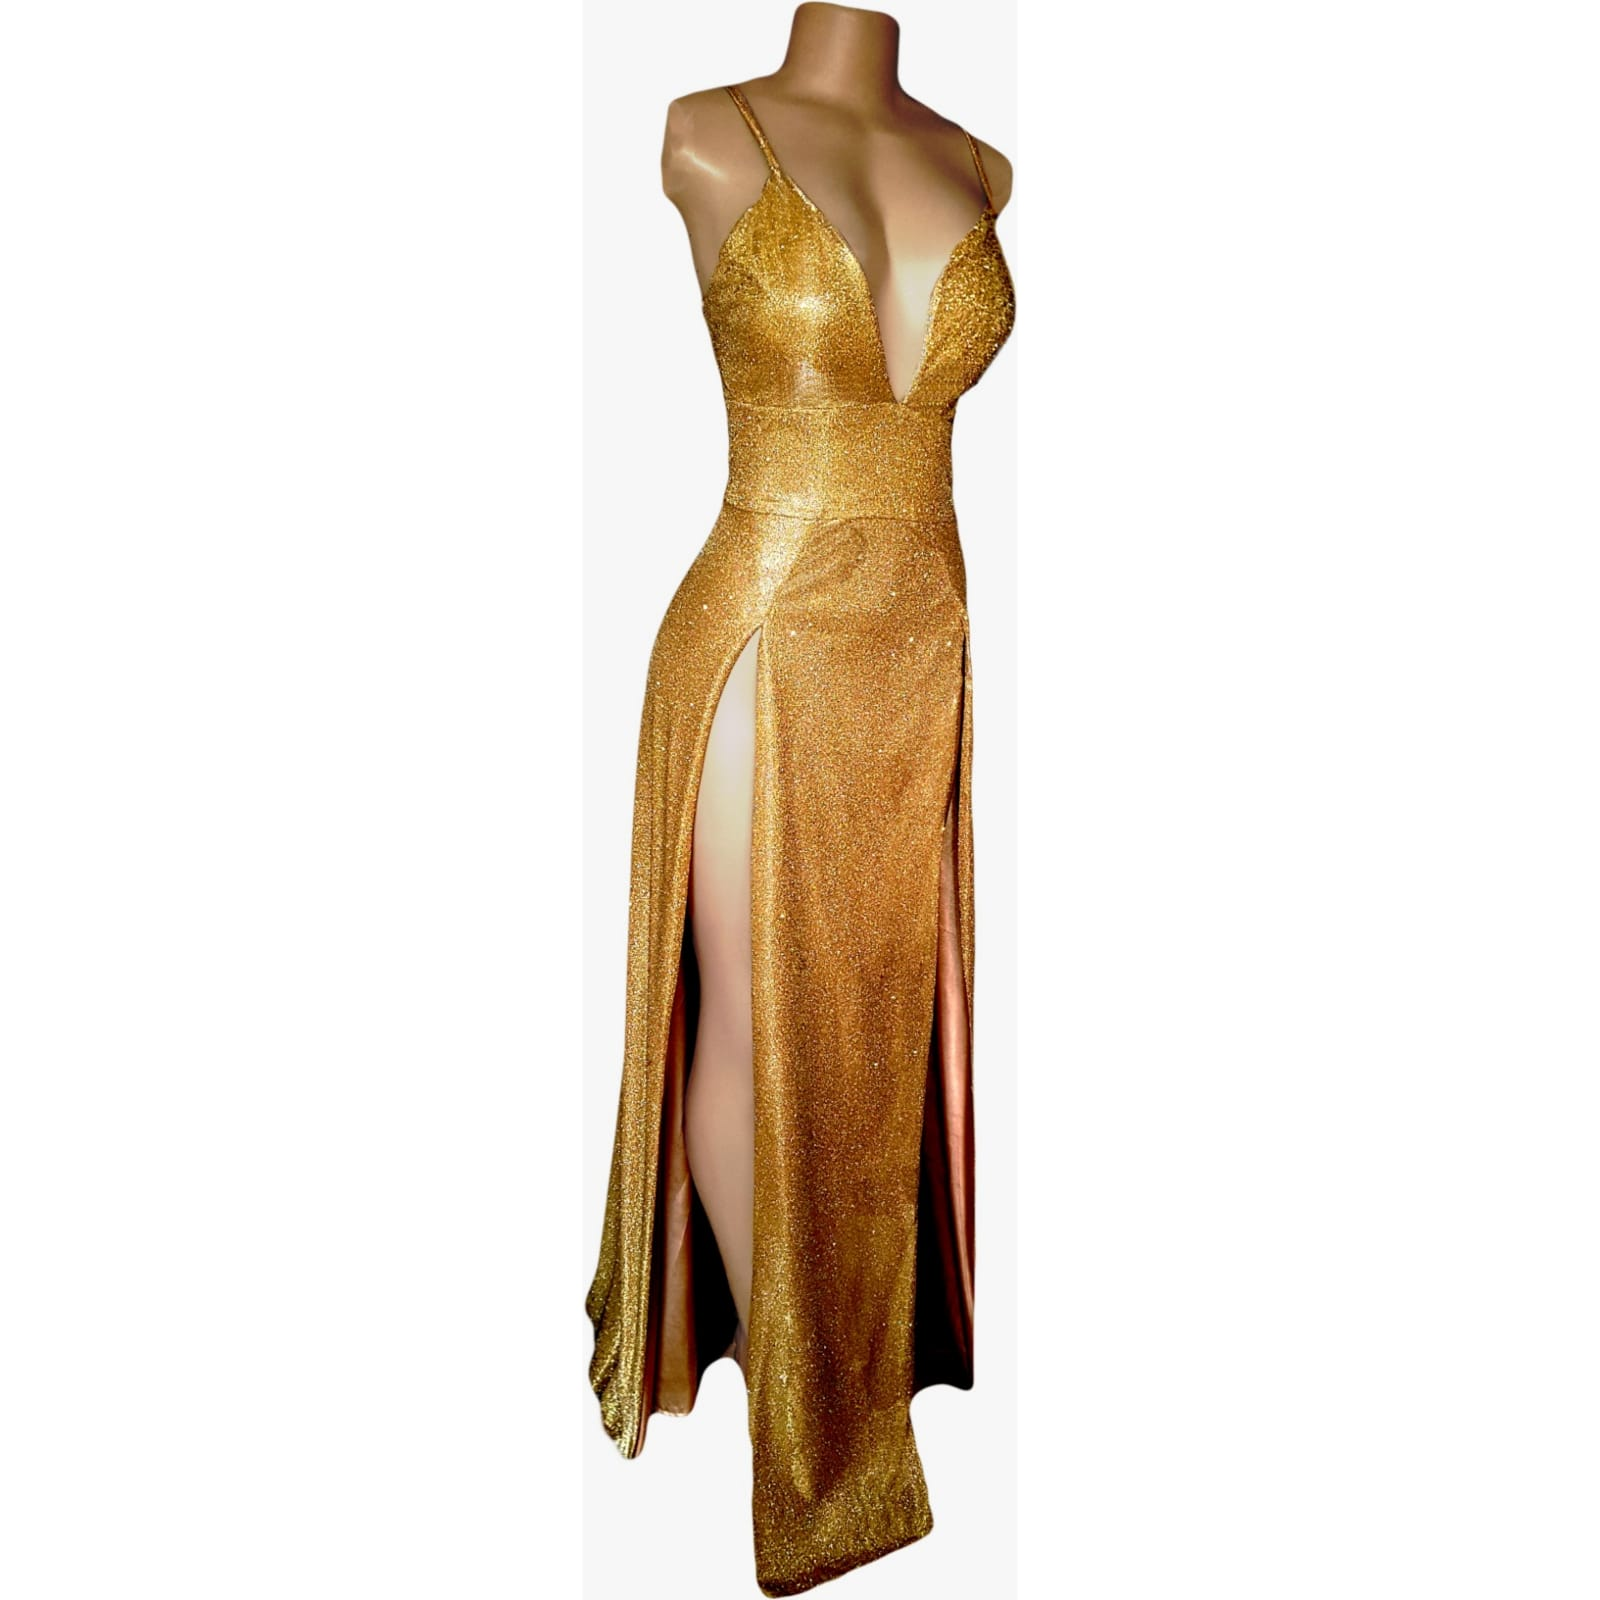 Gold shimmer long sexy prom dress 8 gold shimmer long sexy prom dress with 2 high slits, low v neckline and a little train.